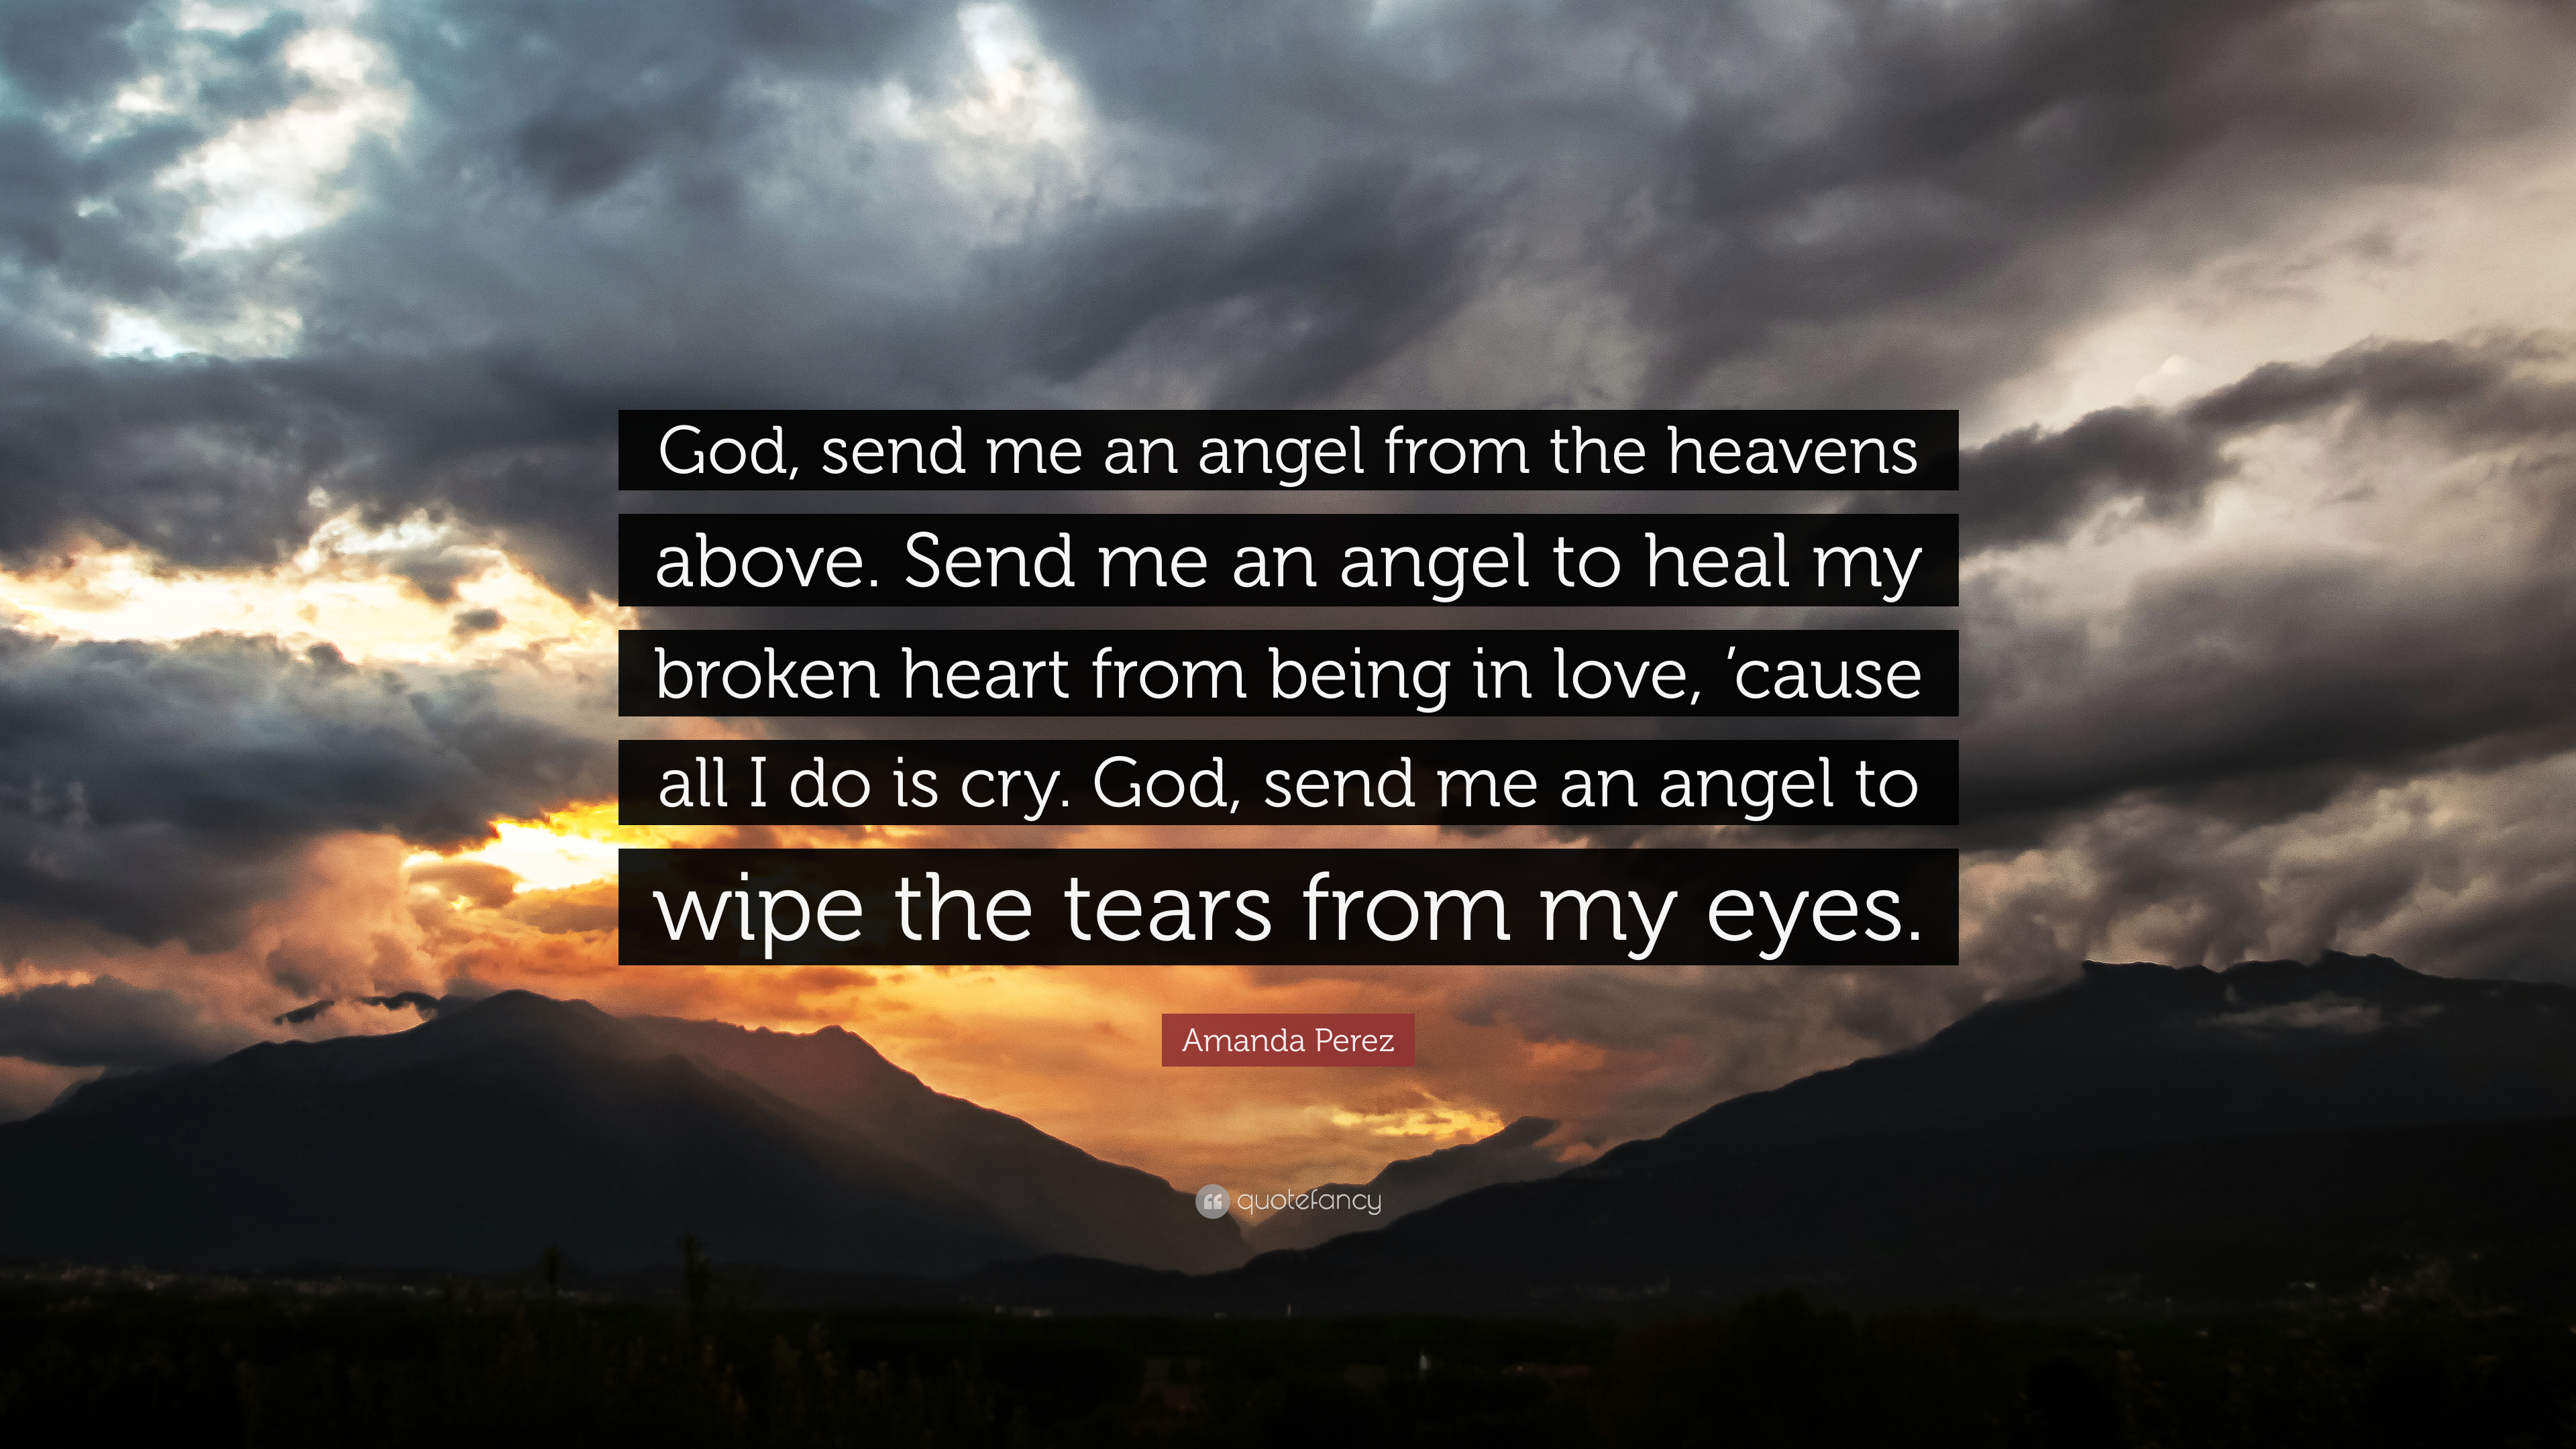 Amanda Perez Quote: God, send me an angel from the